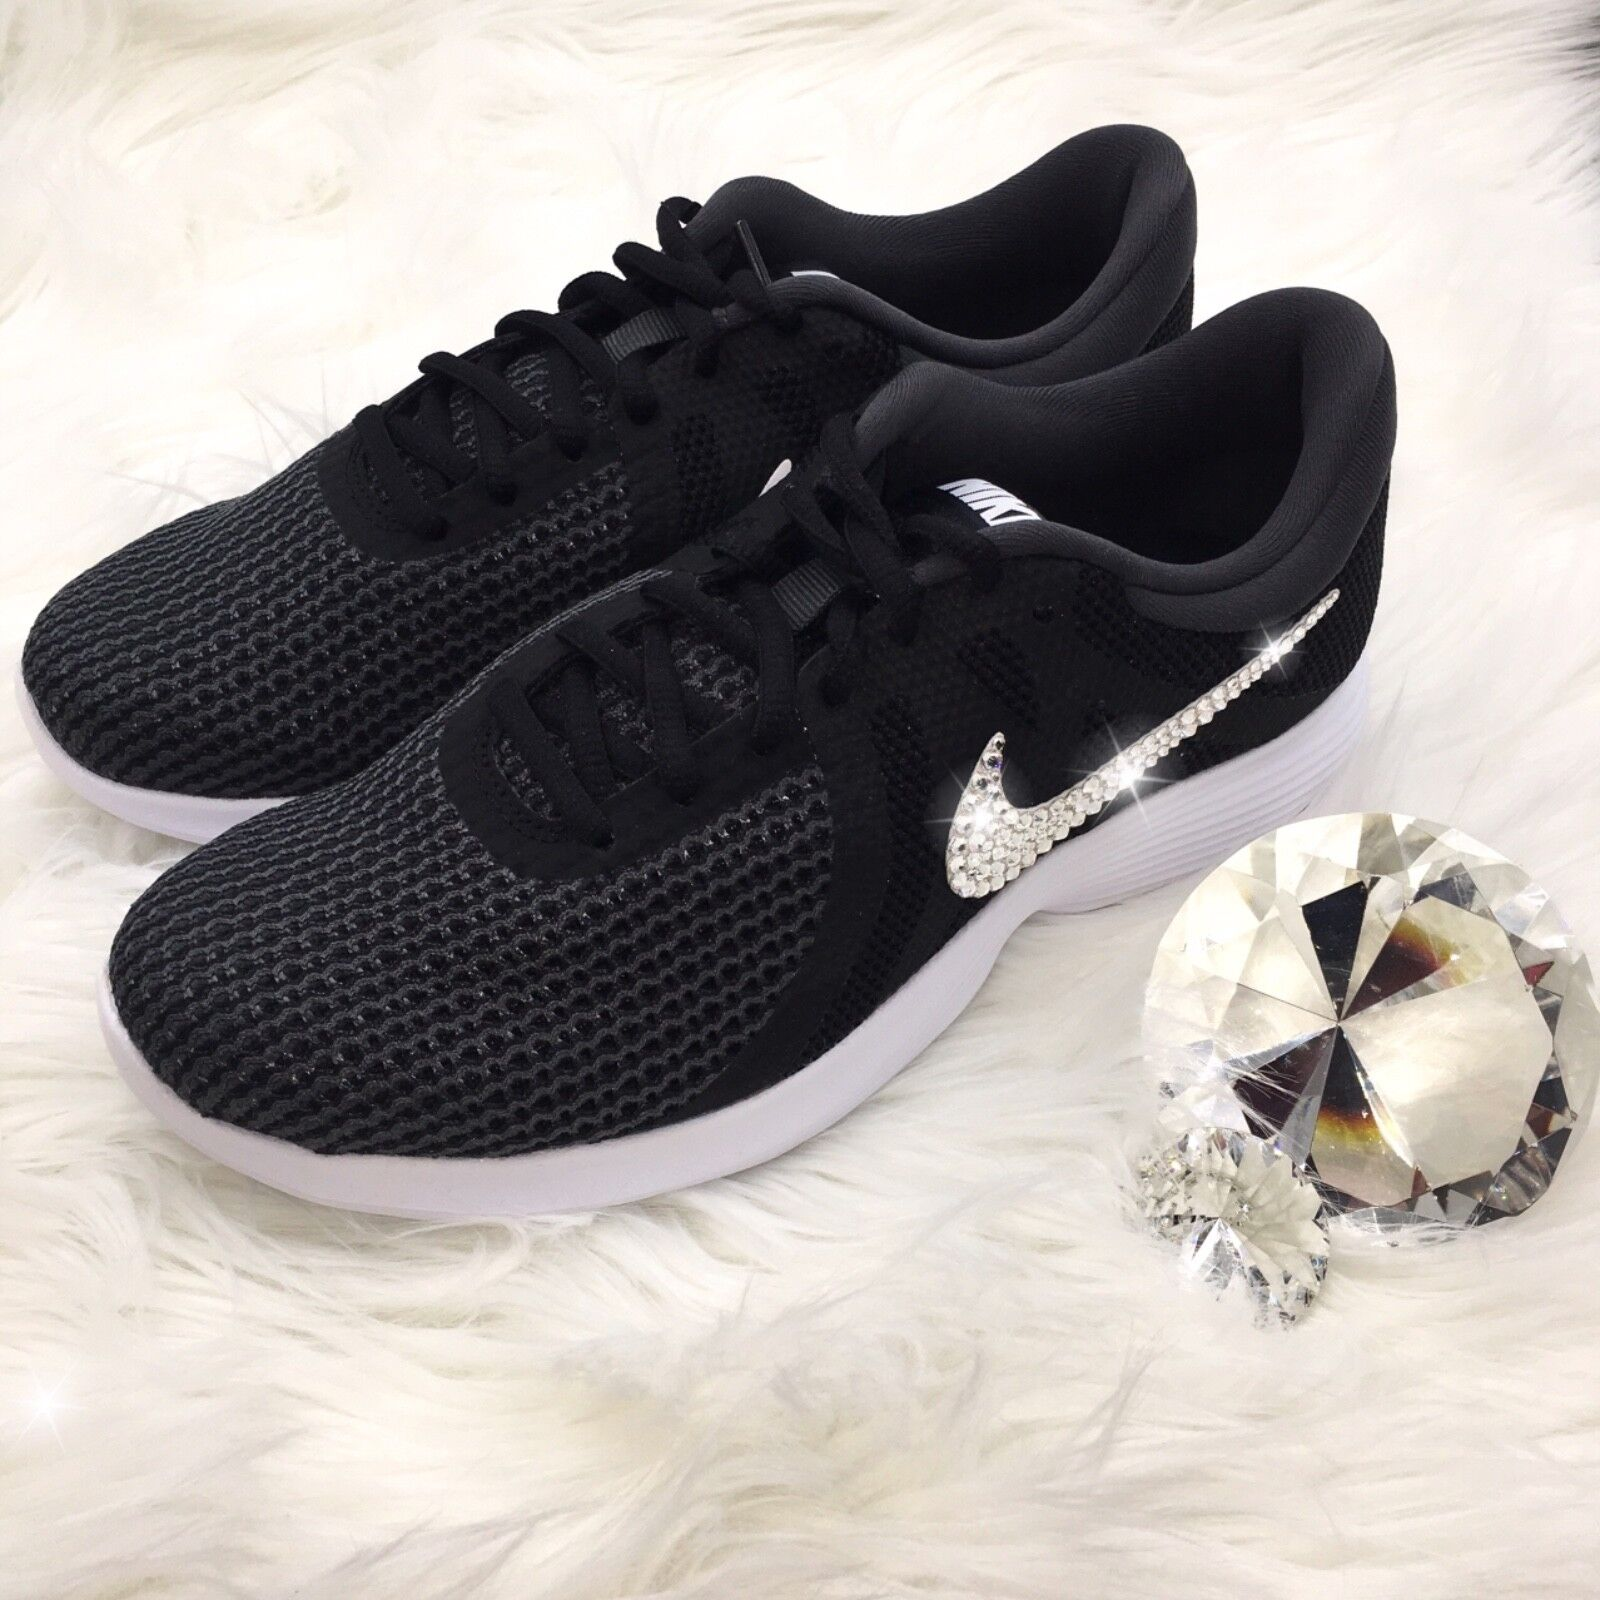 Bling Nike Revolution 4 Women's shoes w Swarovski Crystal Swoosh - Black & White